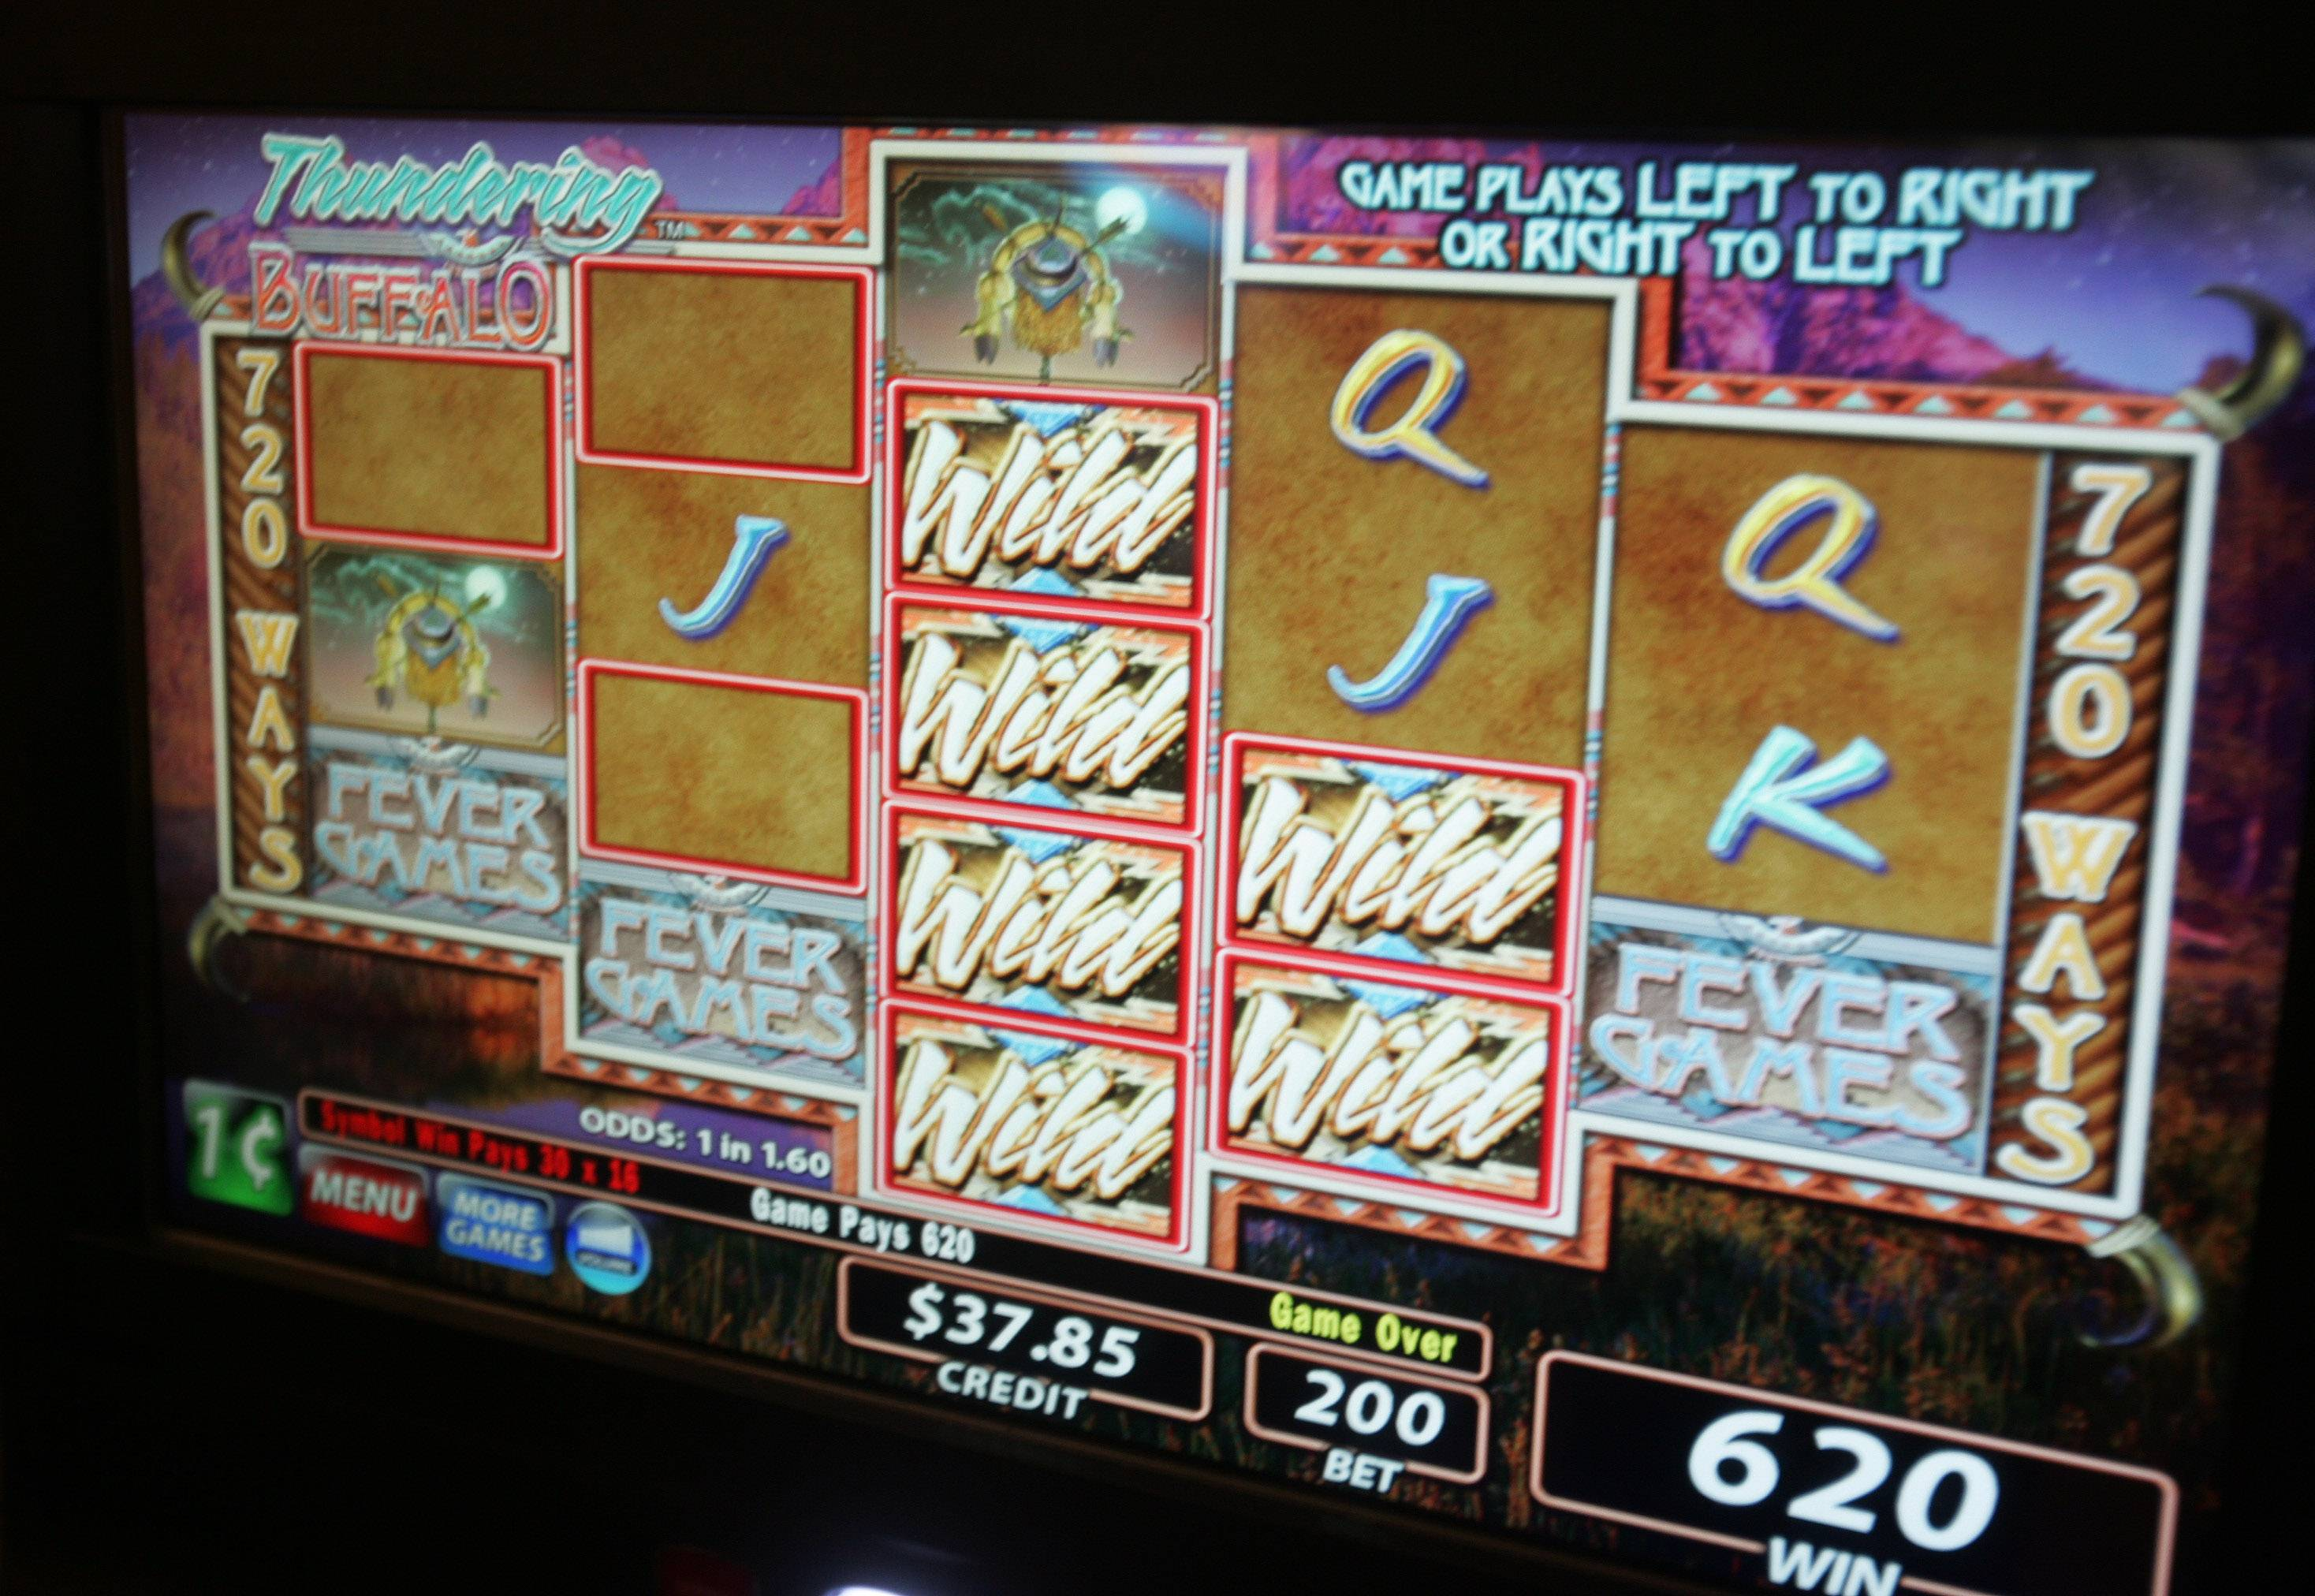 Lake Zurich reverses decision, allows gambling